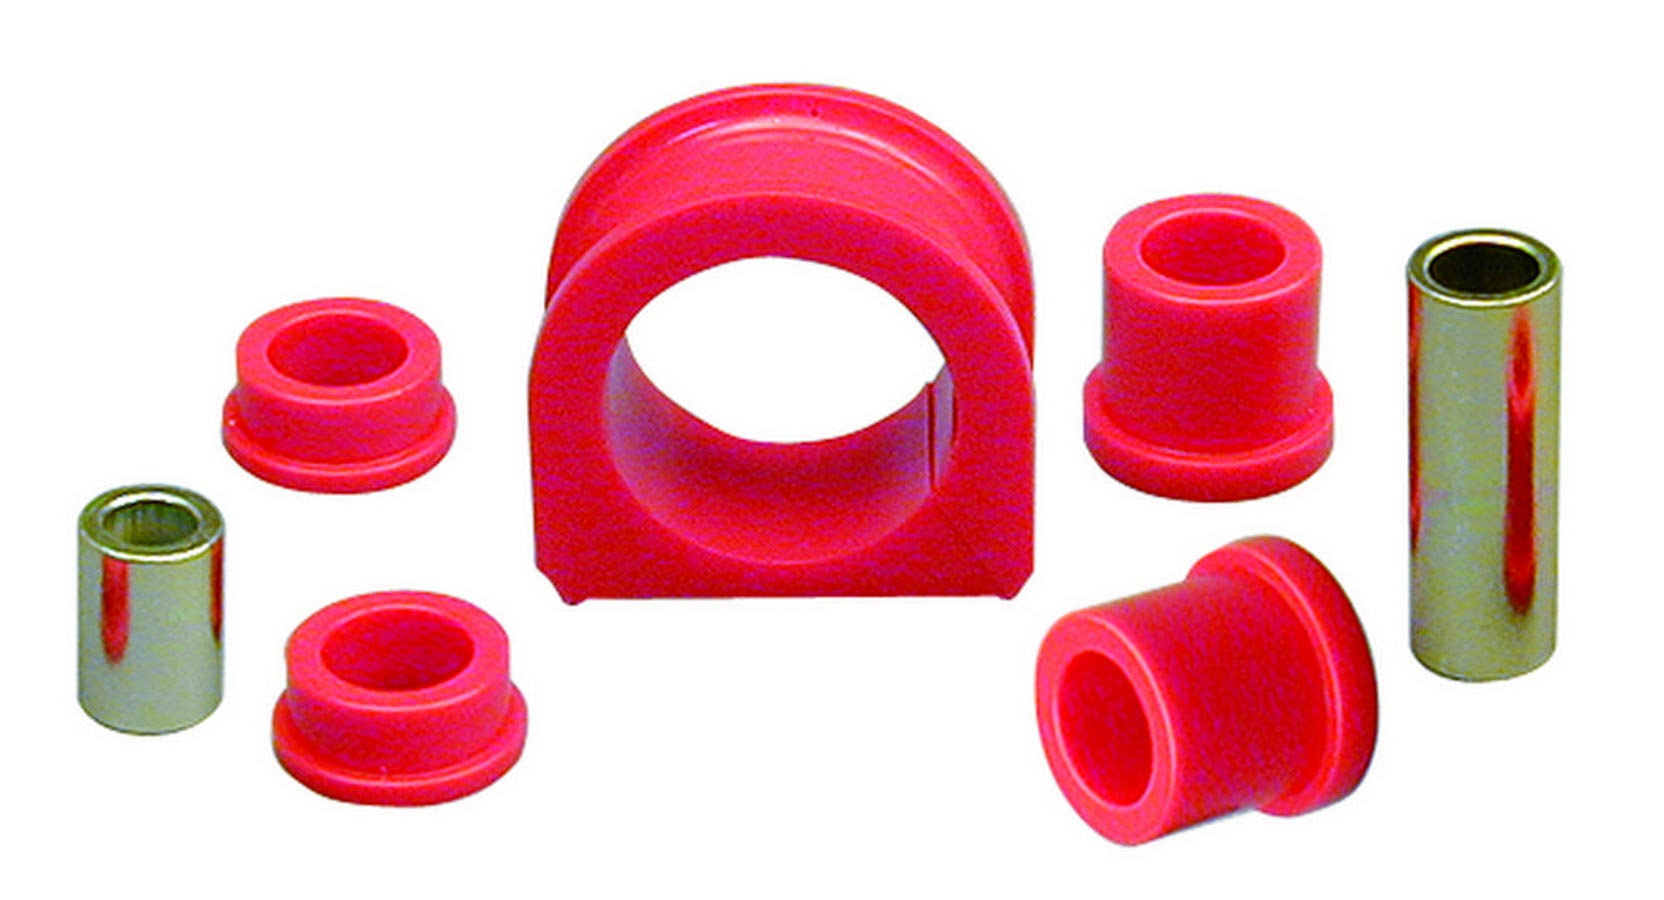 Prothane 8-701-BL Black Rack and Pinion Bushing Kit